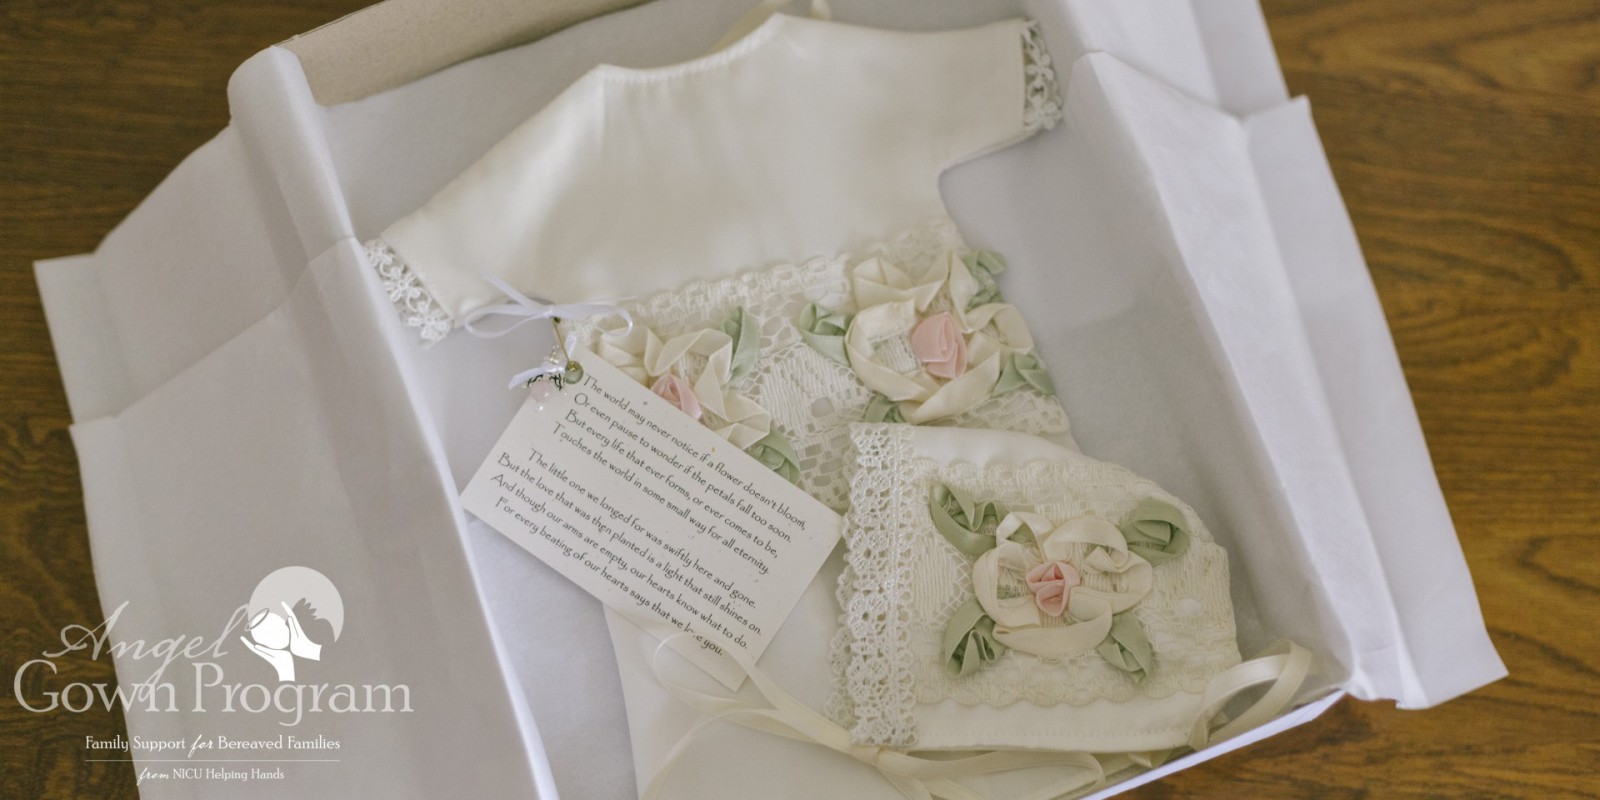 Angel Gowns for Infants Comfort Families